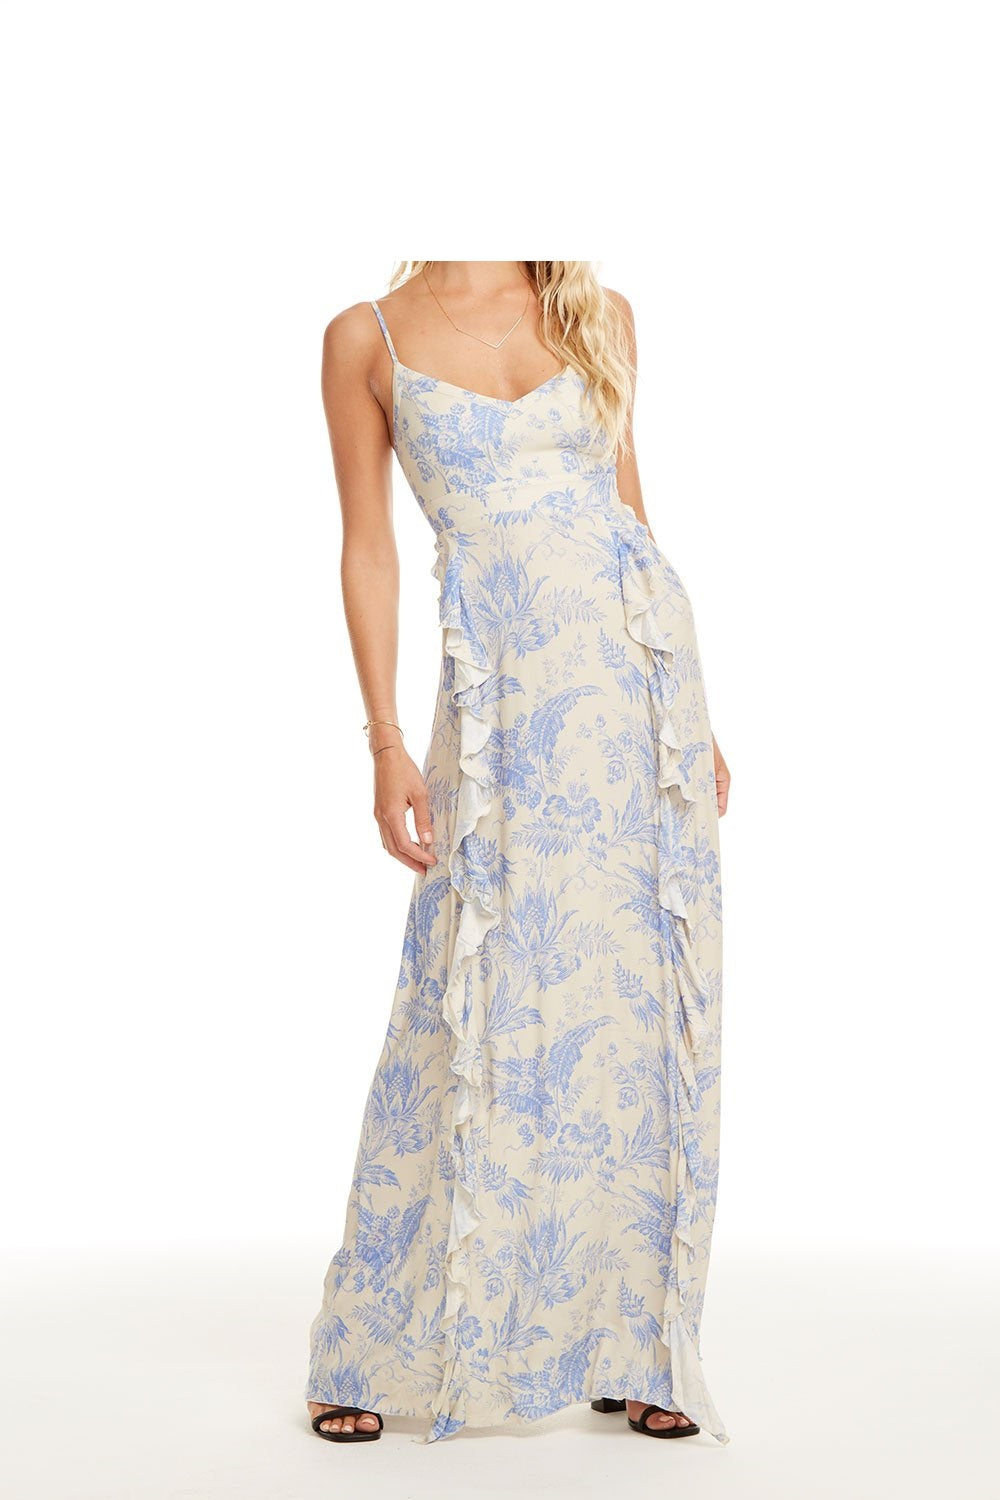 LACE UP BACK RUFFLE MAXI DRESS VICTORIA GARDENS PRINT